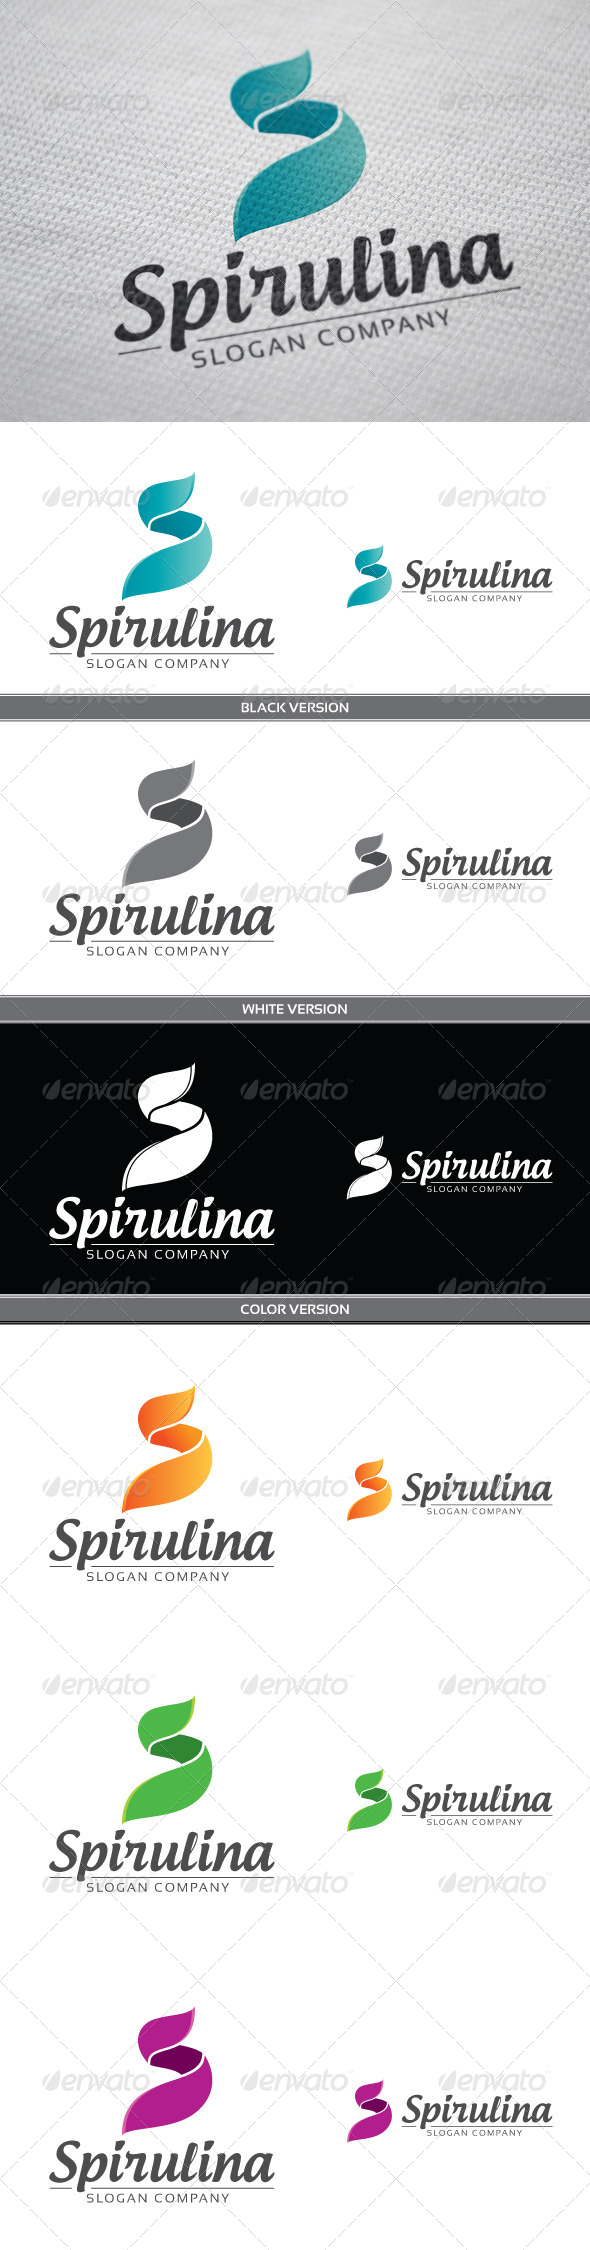 GraphicRiver Spirulina 4123320